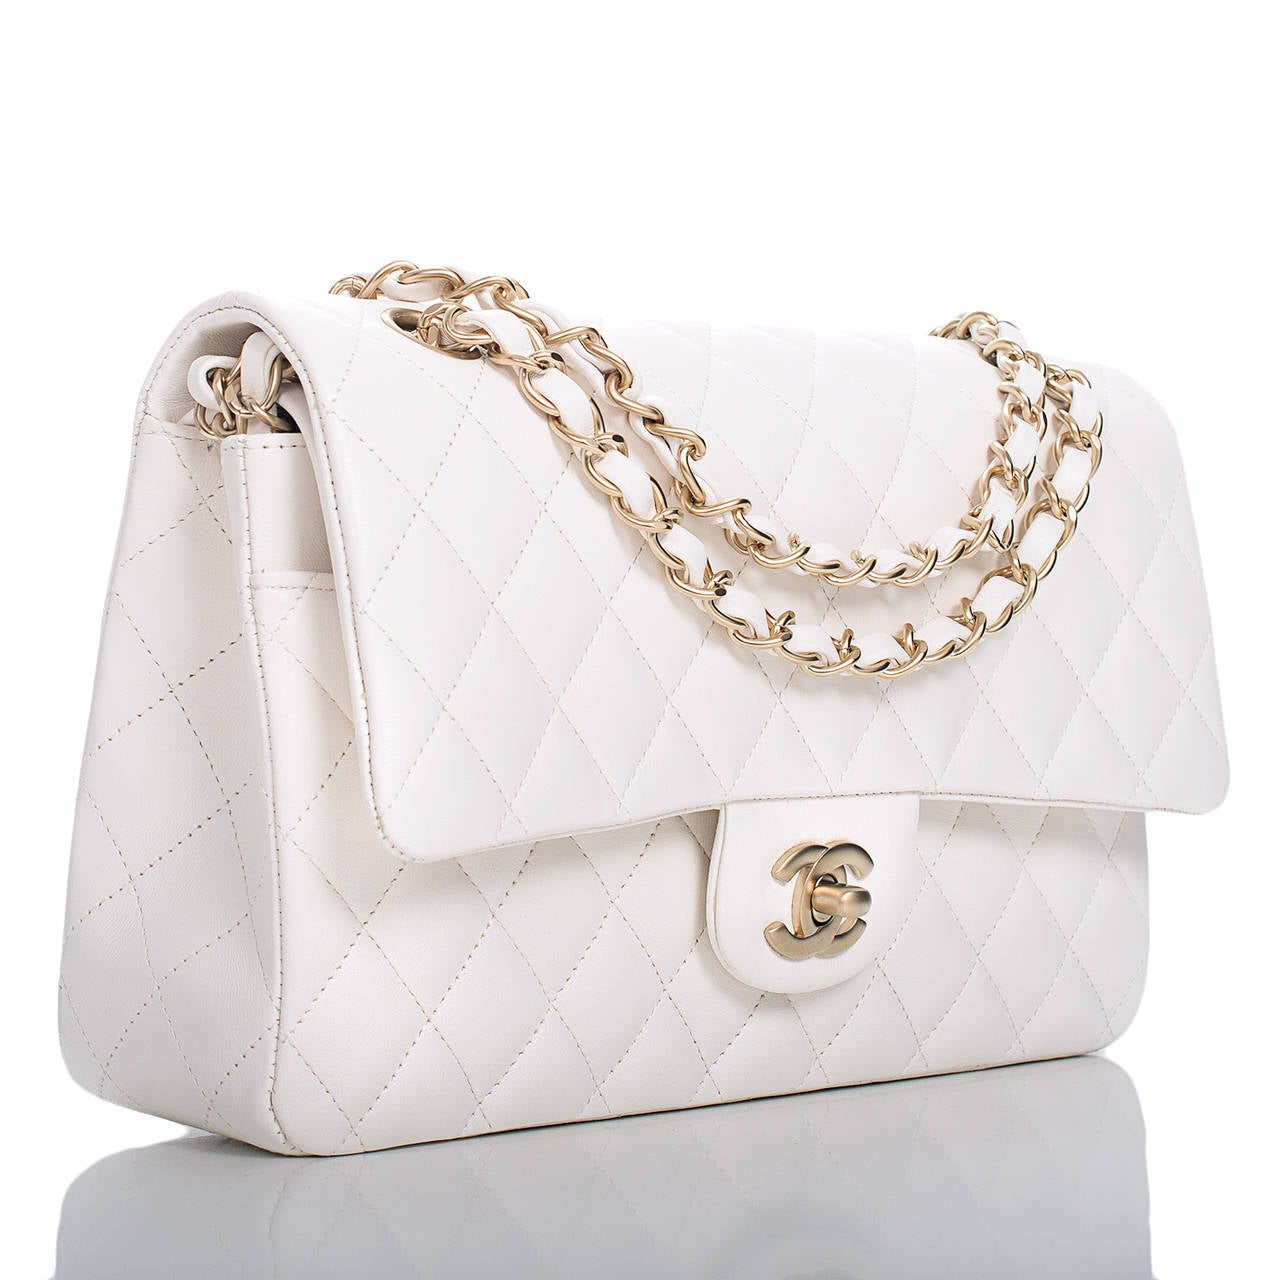 ed7fa342b16d Chanel White Purses | Stanford Center for Opportunity Policy in ...